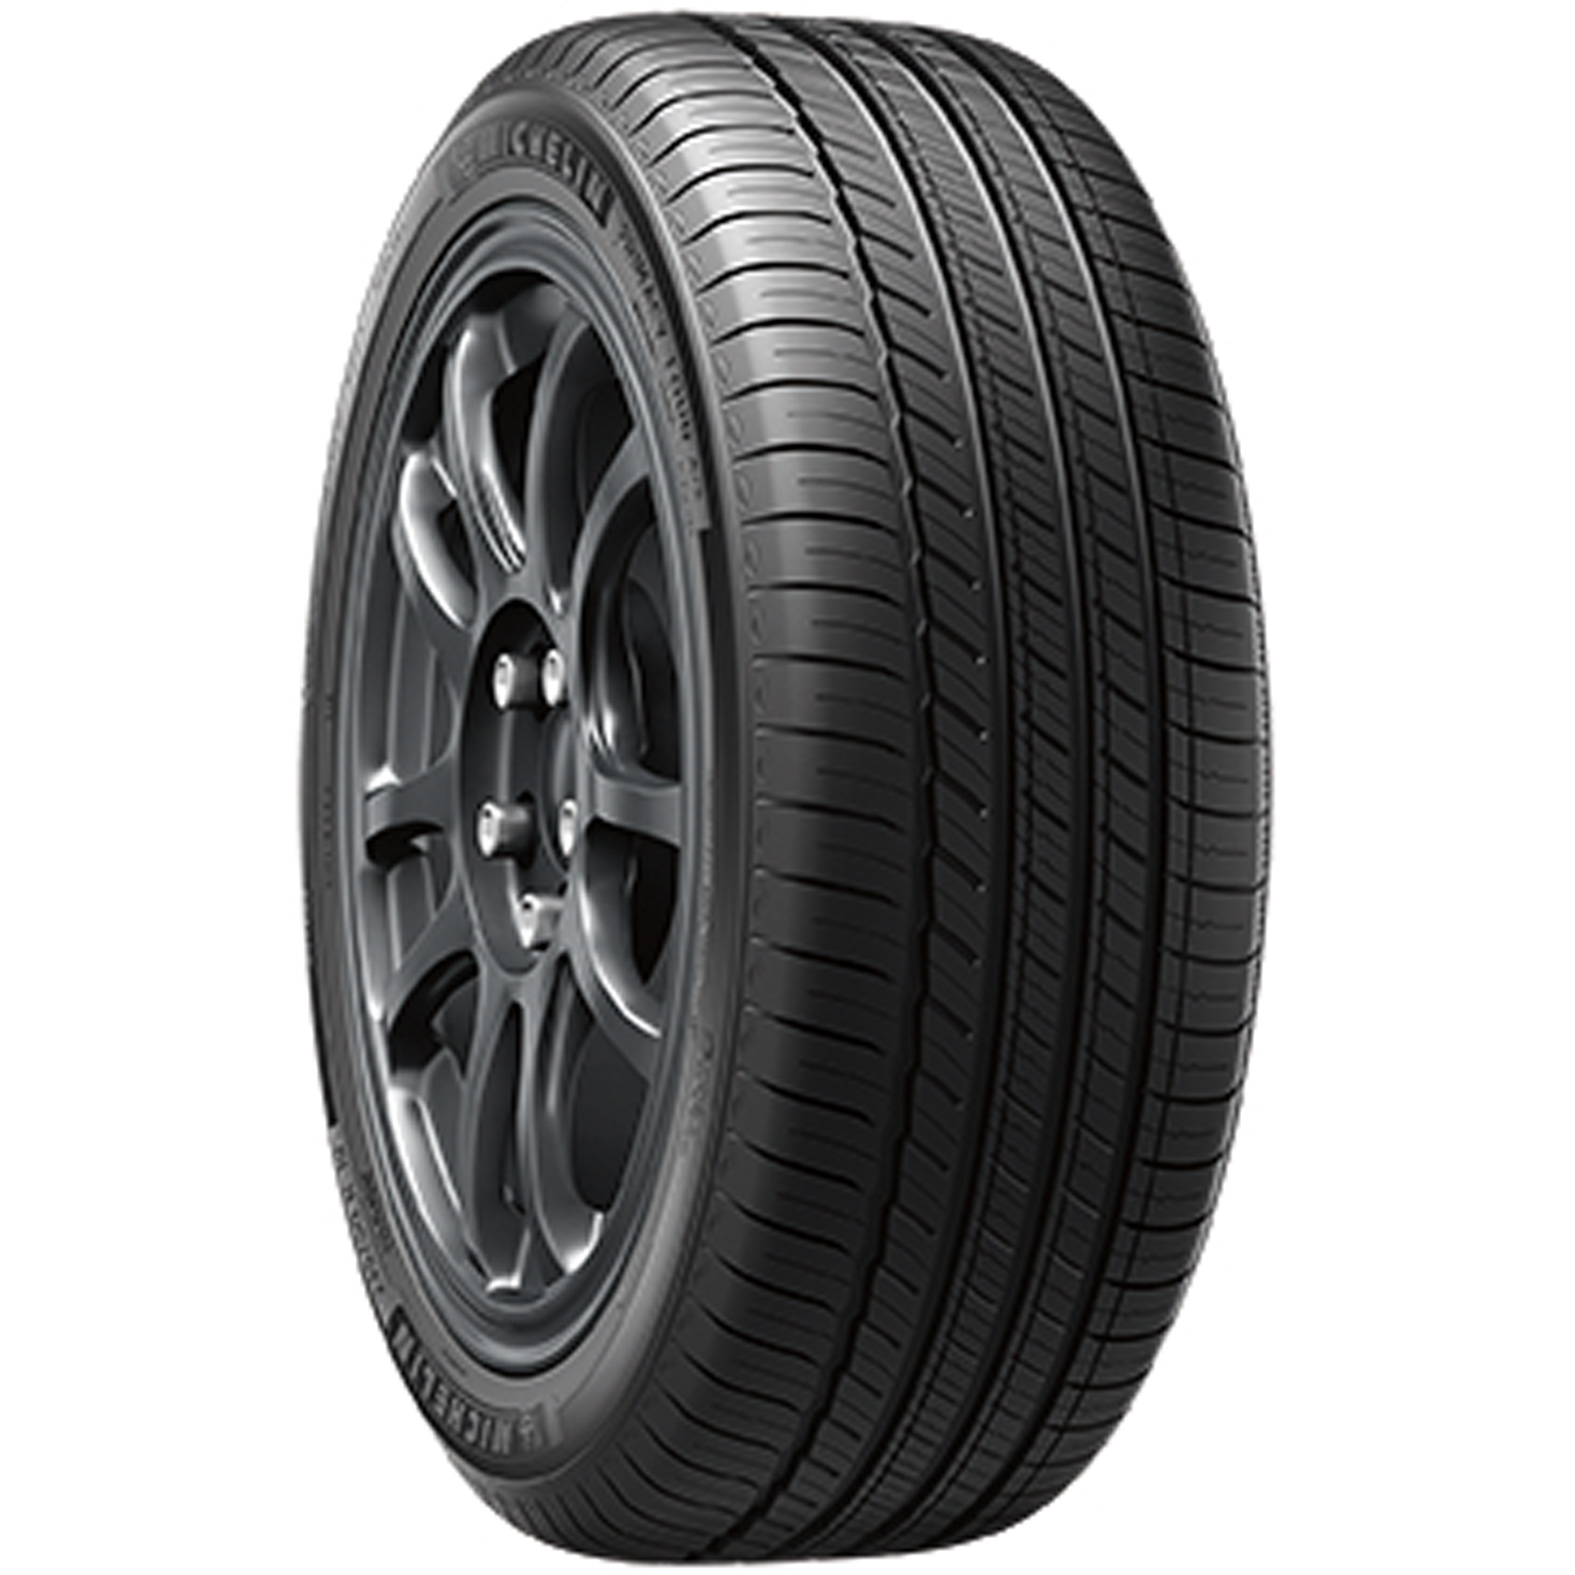 Michelin PRIMACY TOUR A/S  tire - angle